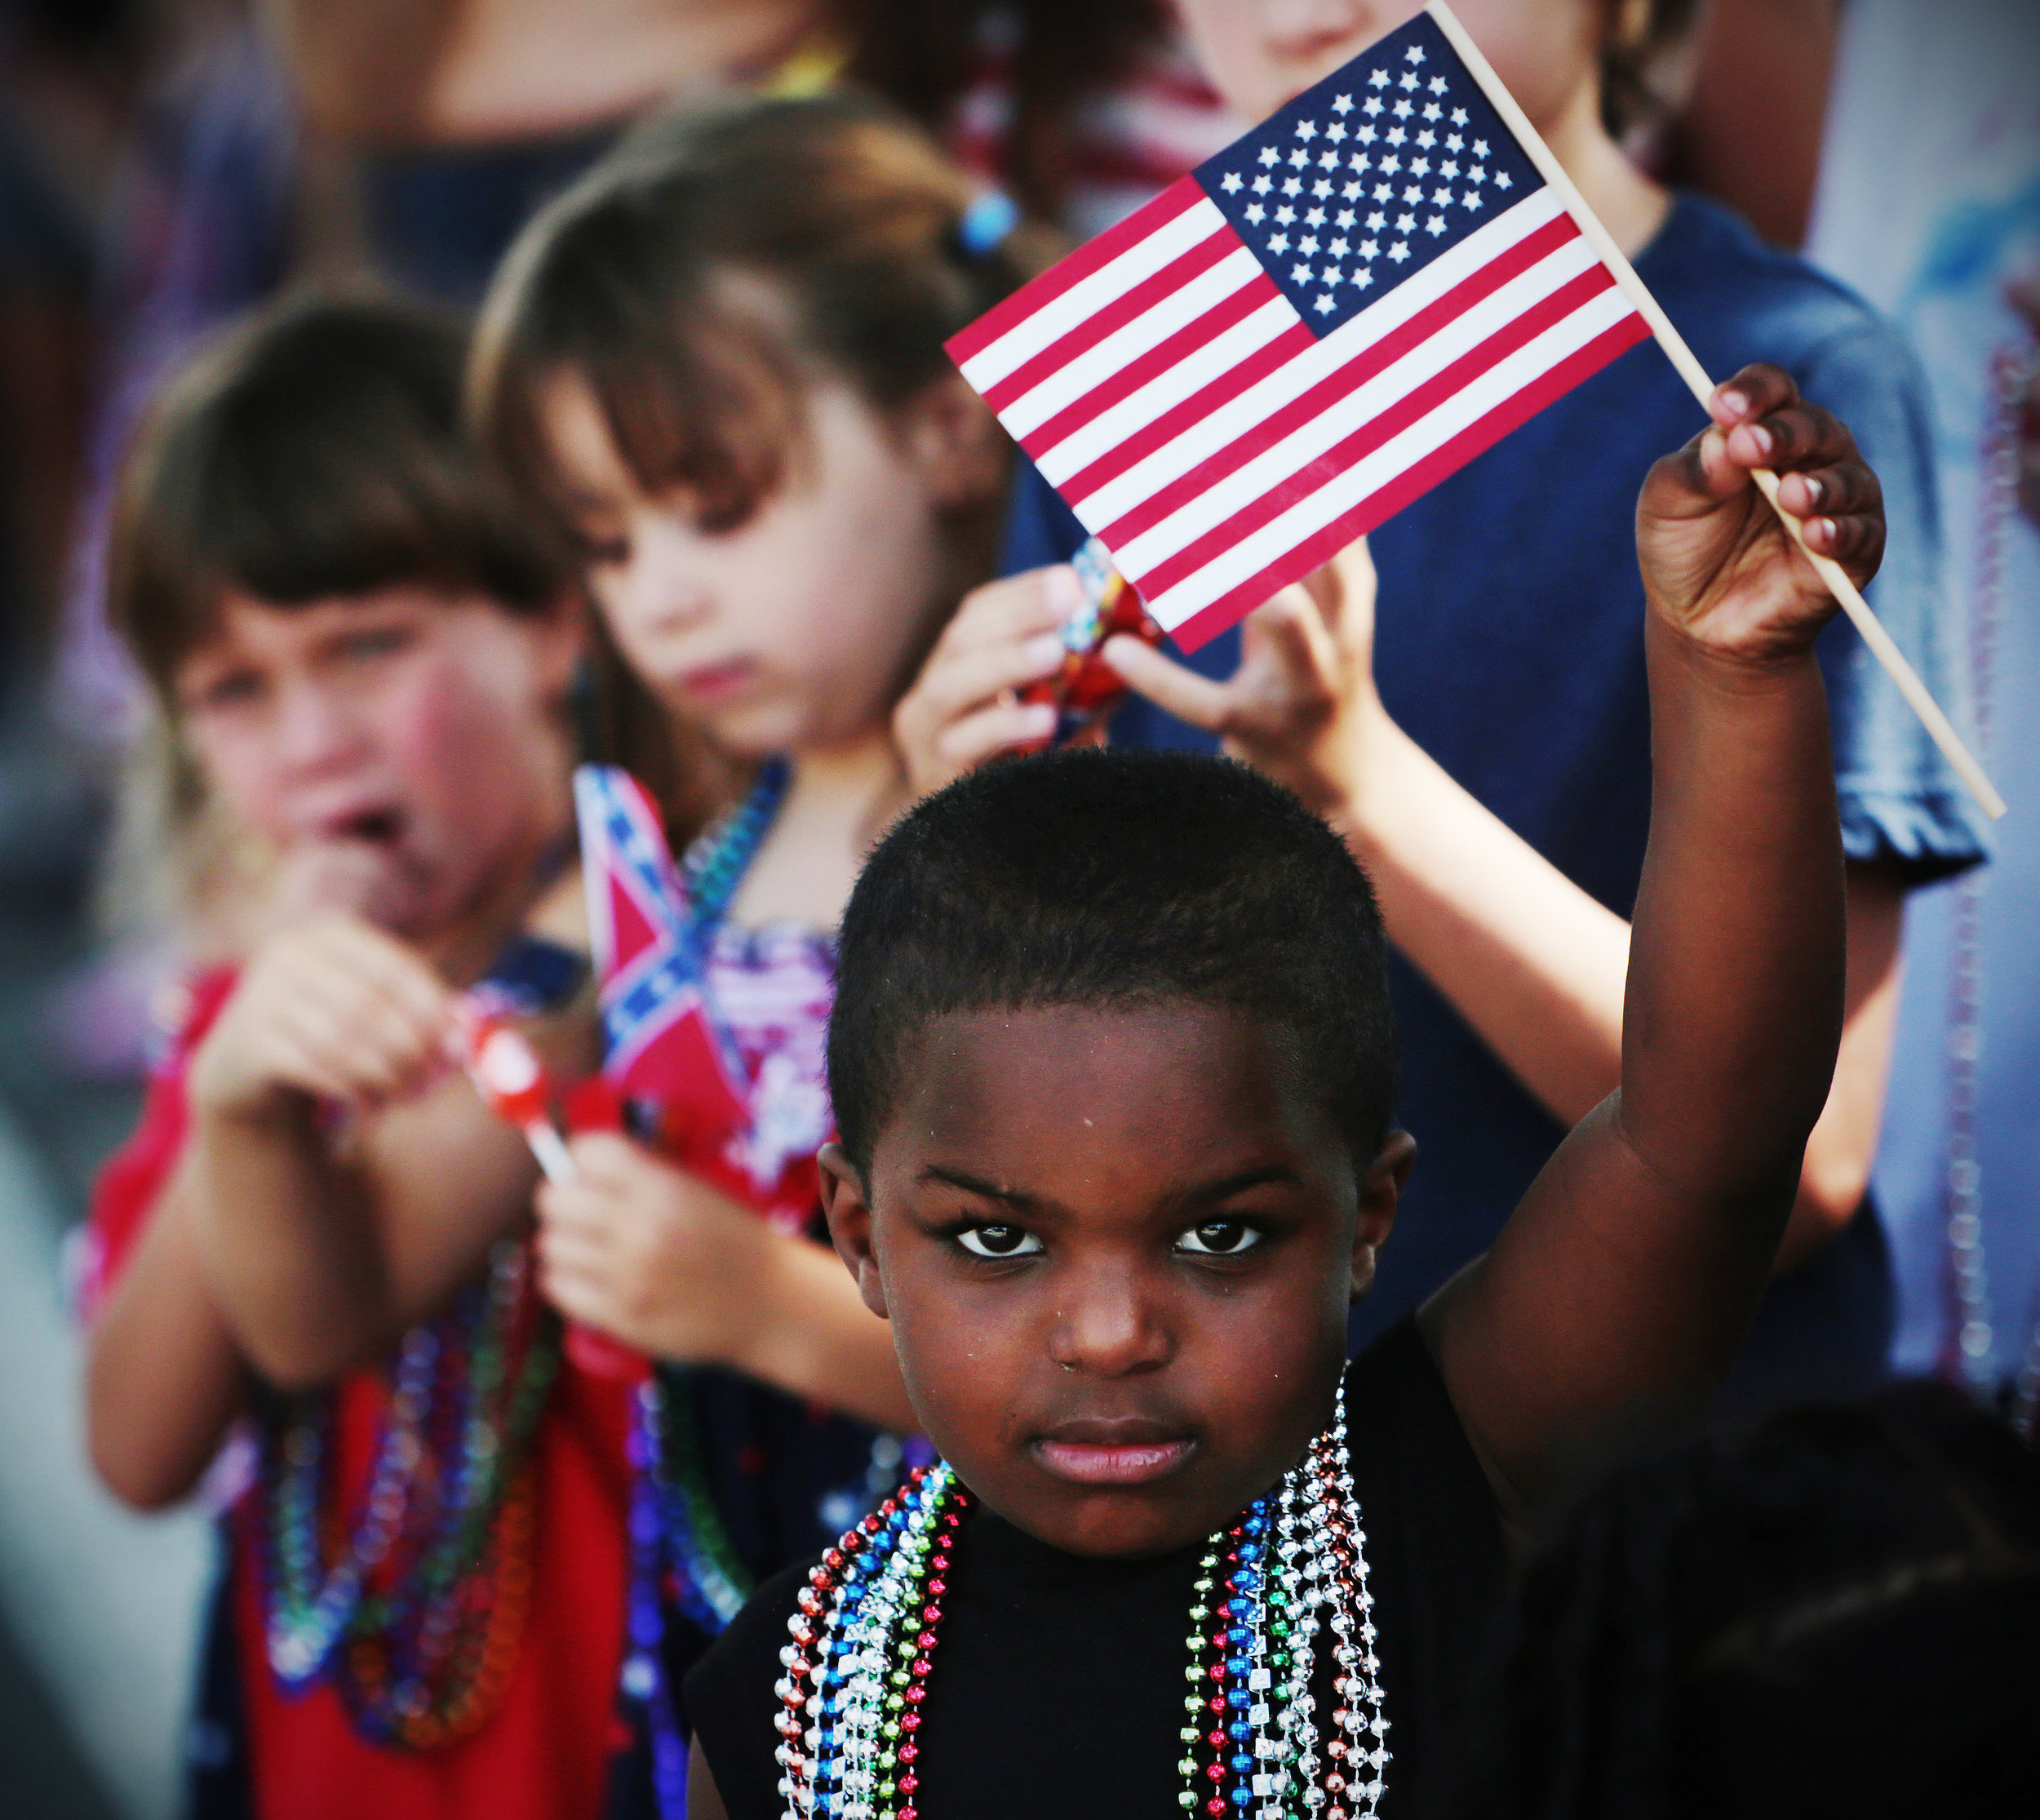 Nathan Cobbs, 4, of Brandon waves the flag above his head during the Fourth of July parade Saturday, July 4, 2018 in Brandon, FL.